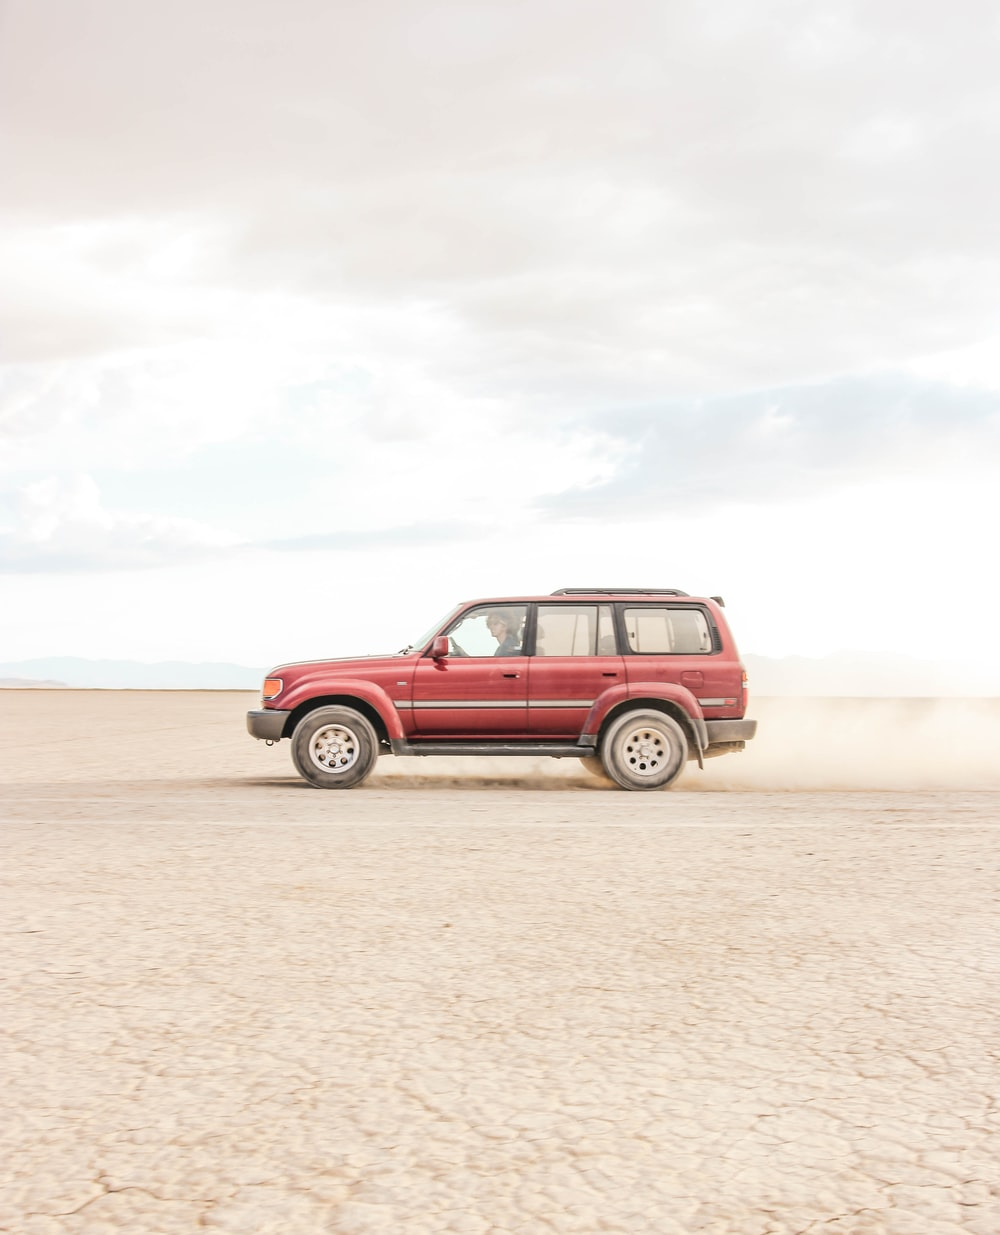 red vehicle under white sky at daytime